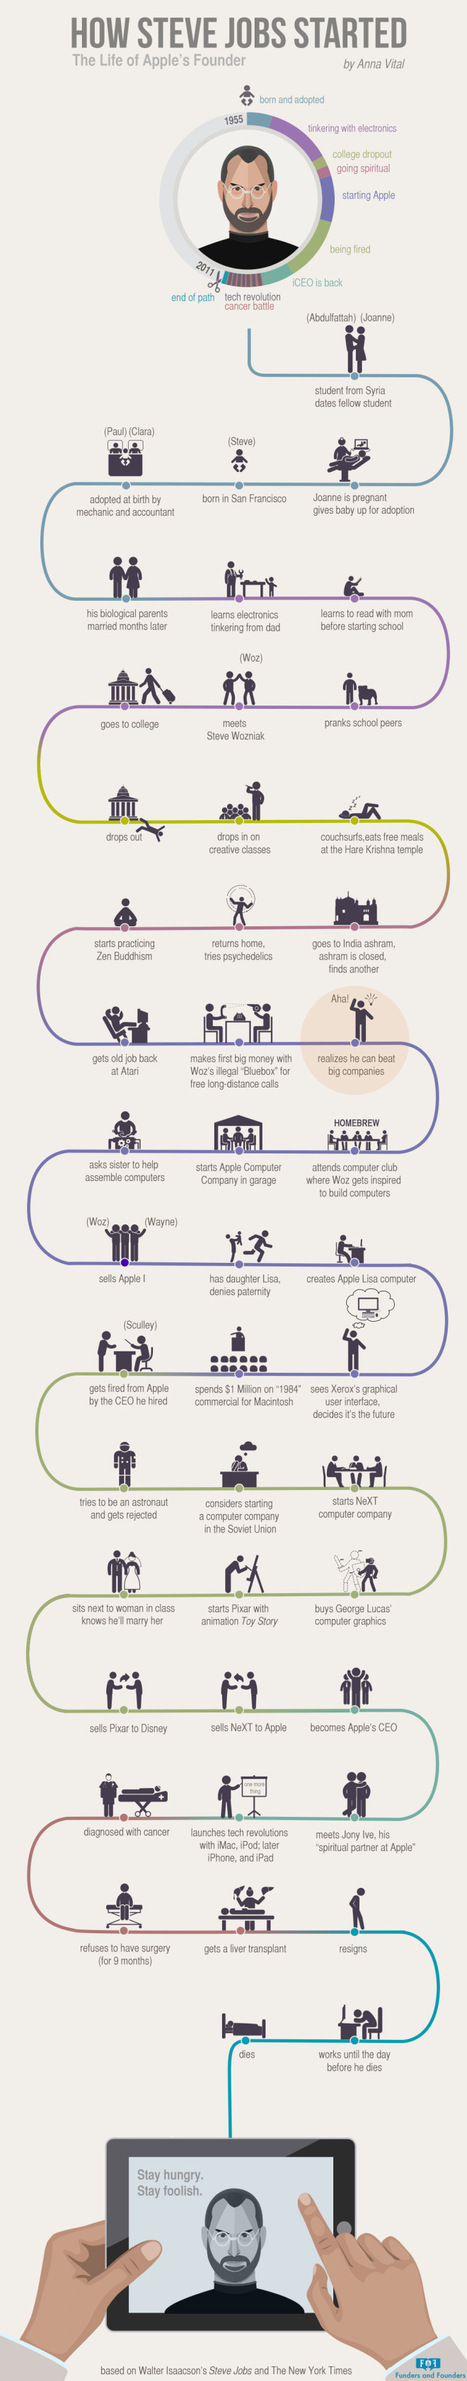 How Steve Jobs Started - The Life Of Apple's Founder (Infographic) | Educational Technology and Sustainability | Scoop.it